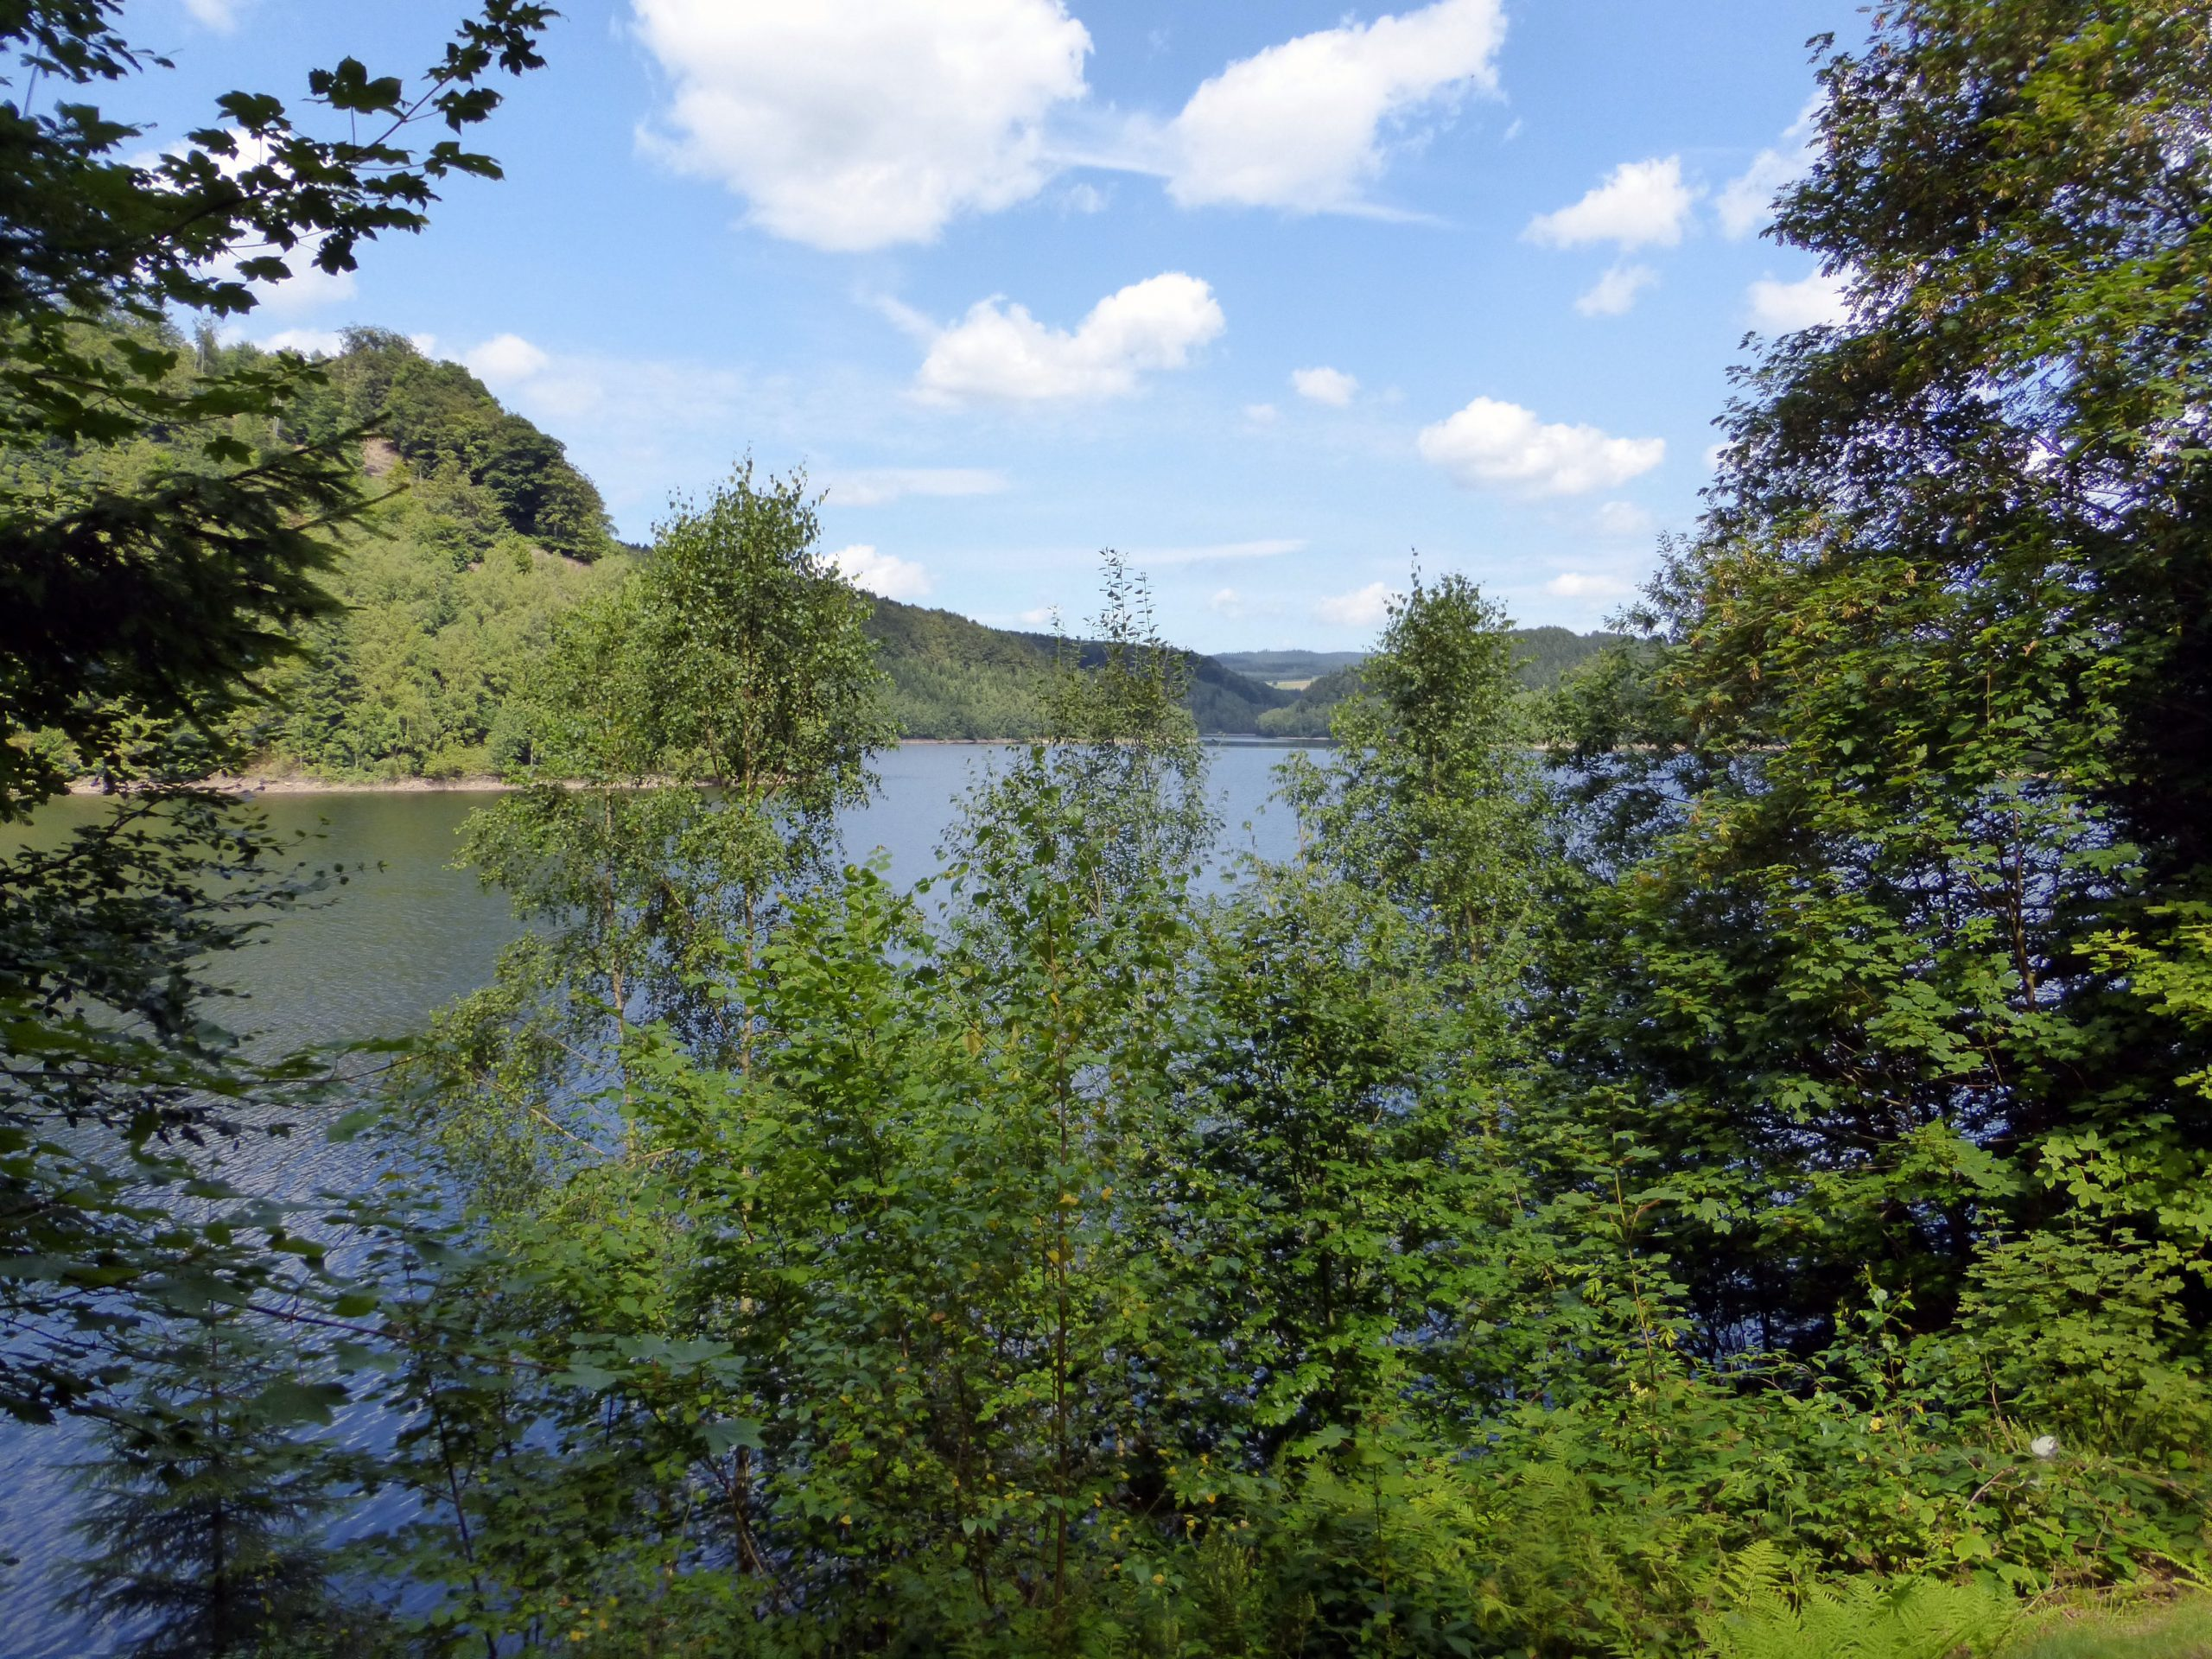 A quiet section of the Bostalsee in Saarland Germany